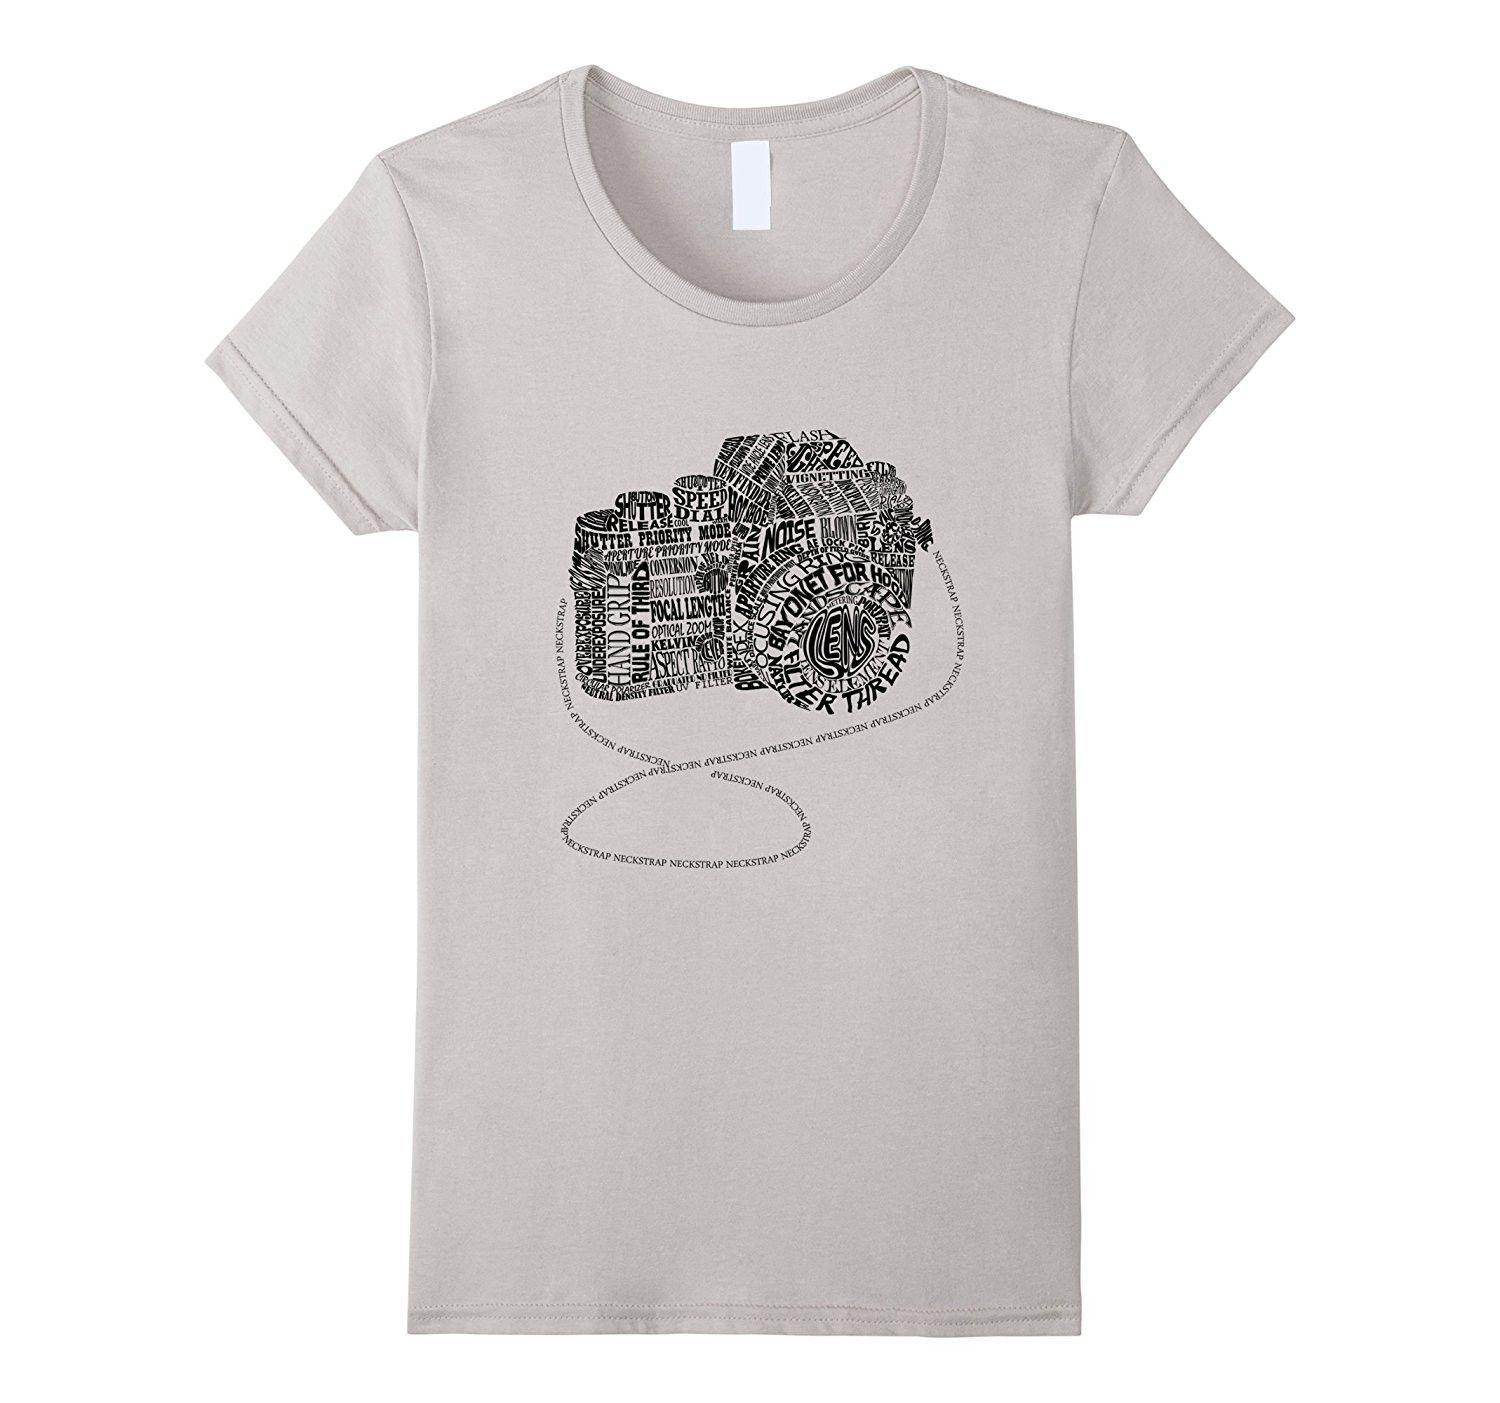 Camera Amazing Anatomy Typography T-shirt Black Version | koszulki ...